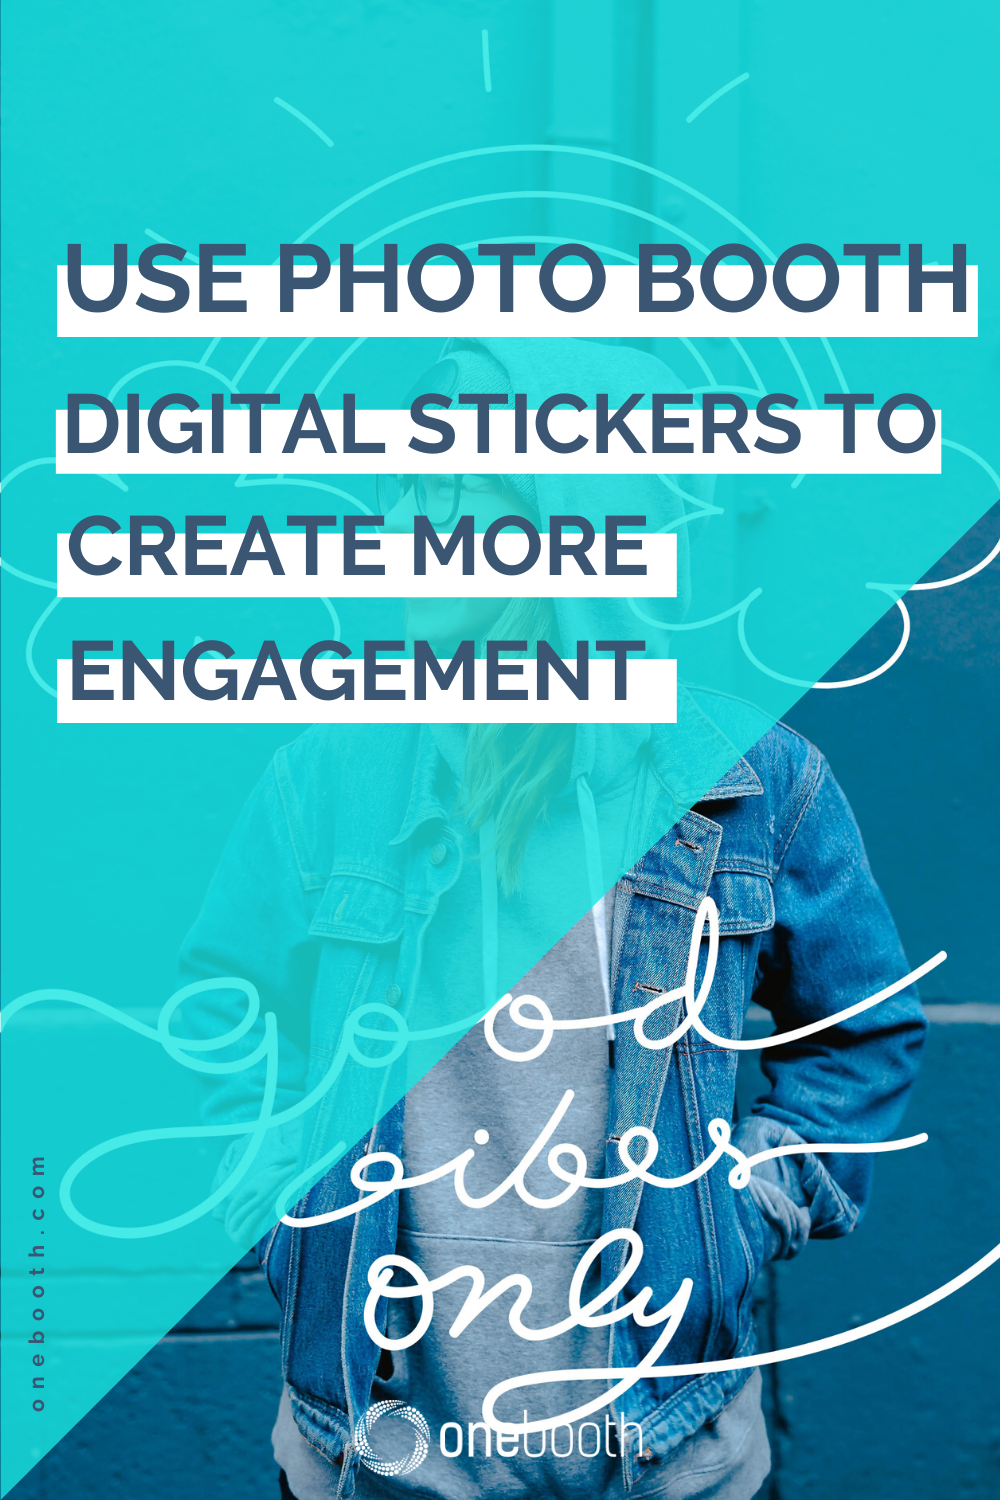 Need More Engagement At Your Event? Try Photo Booth Stickers